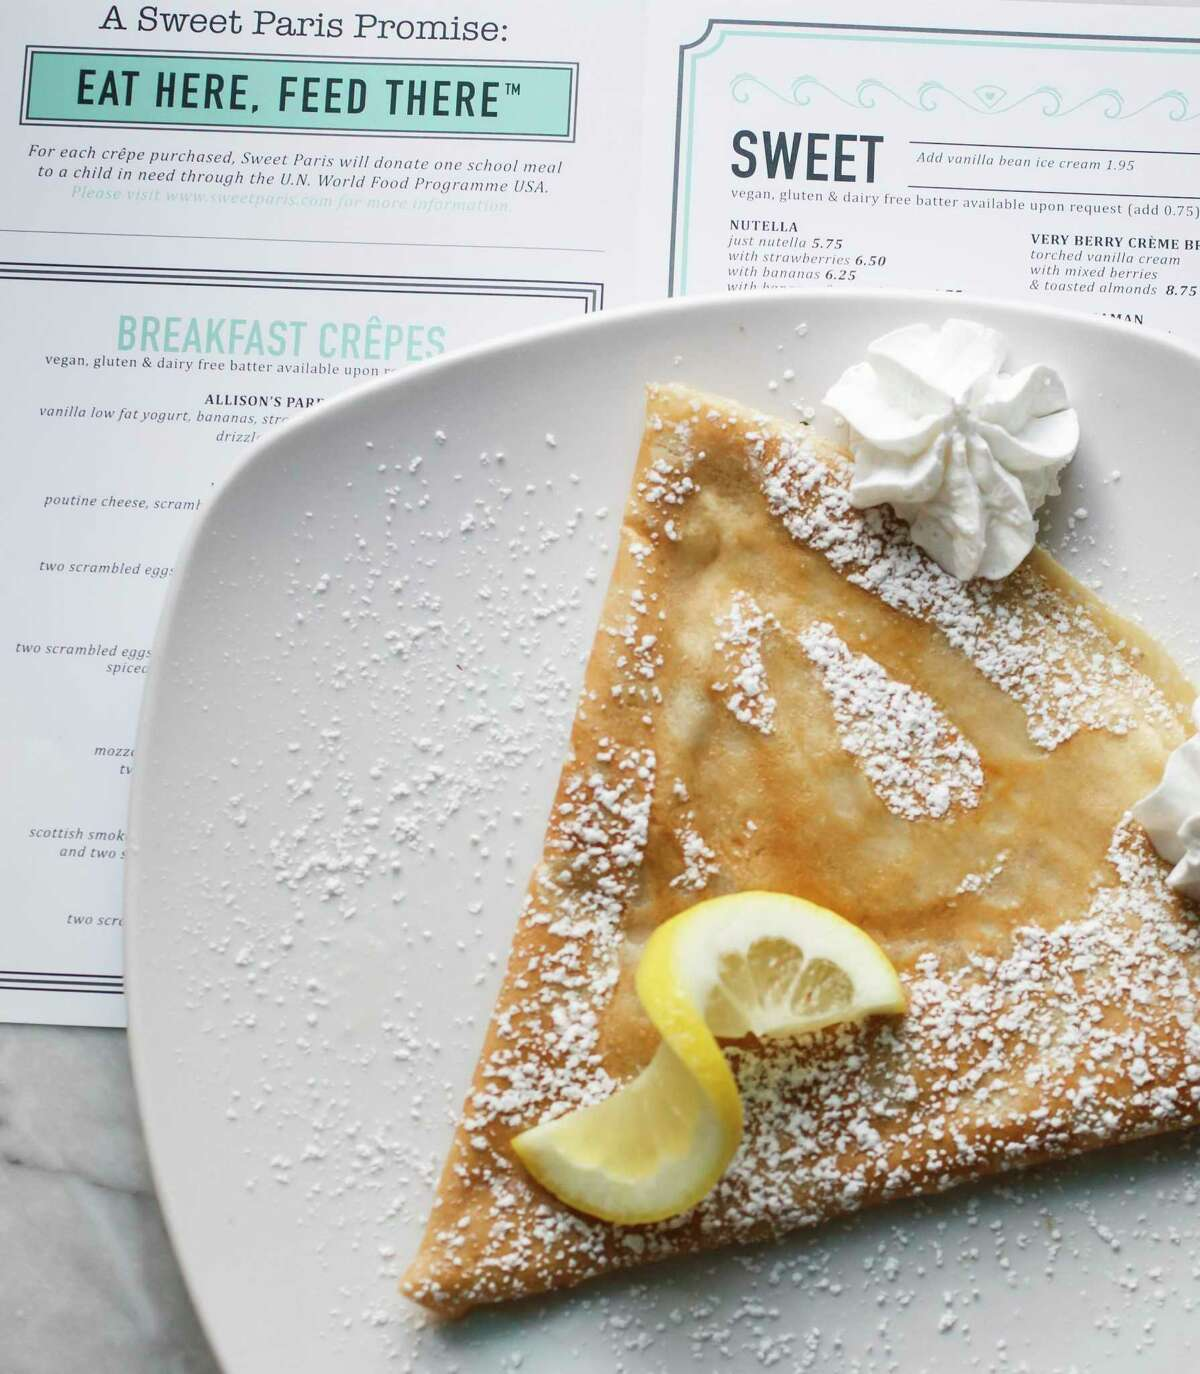 Swet Paris specializes in sweet and savory crêpes.